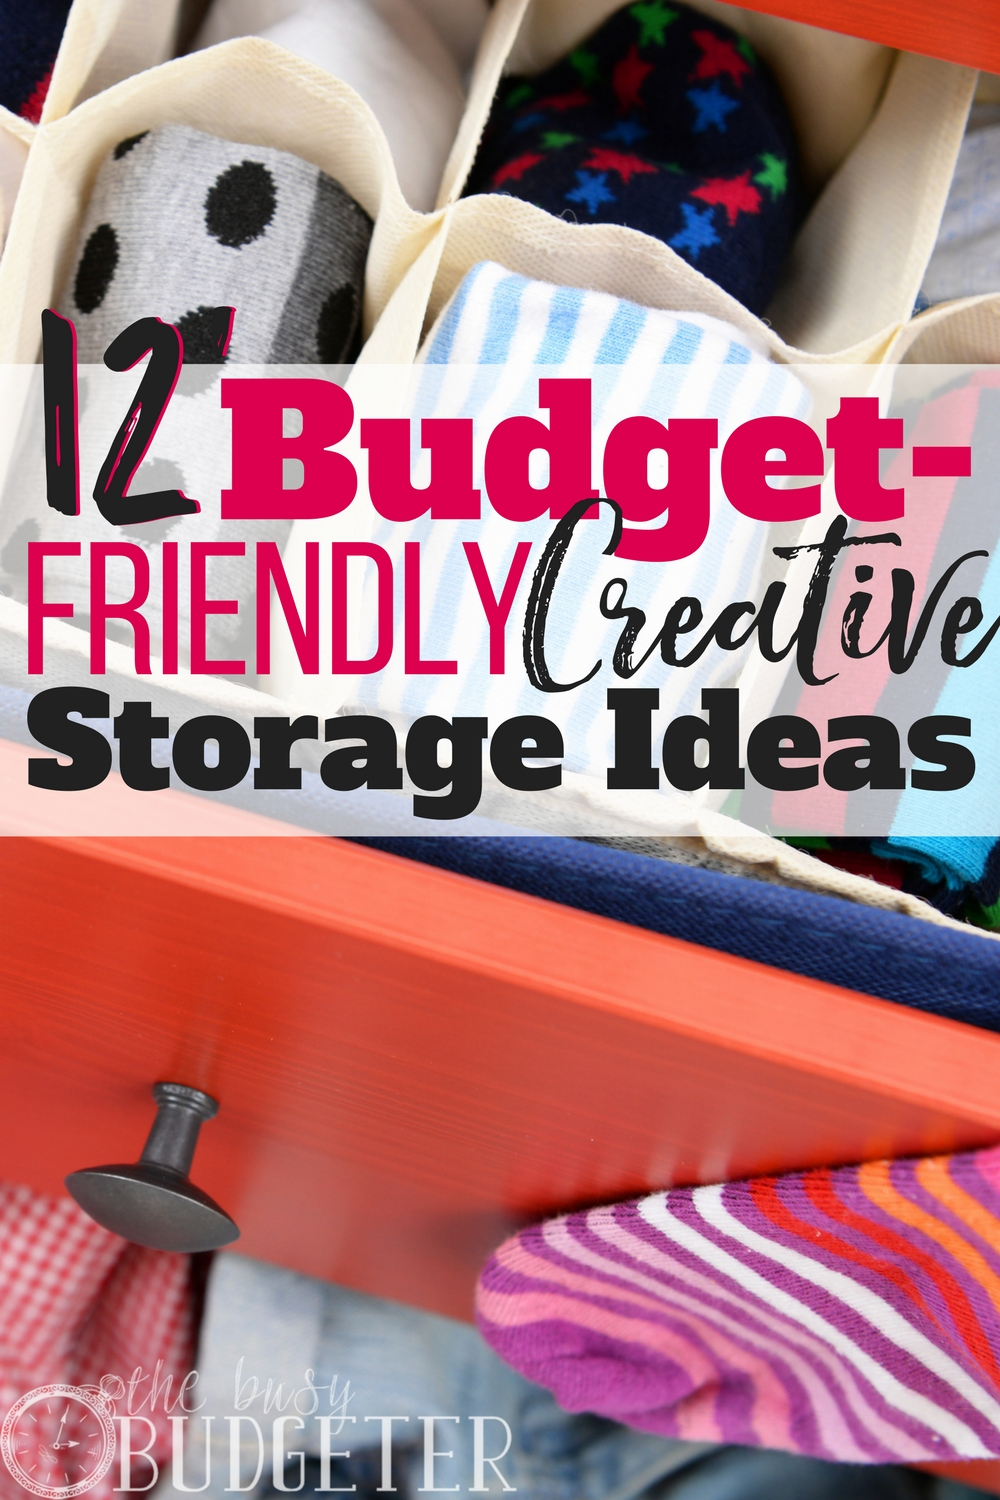 I love these budget friendly storage ideas! I can't even tell you how much I hate clutter-- my husband and kids leave their stuff everywhere! These creative storage ideas are so easy, I can't believe I didn't think of them before!